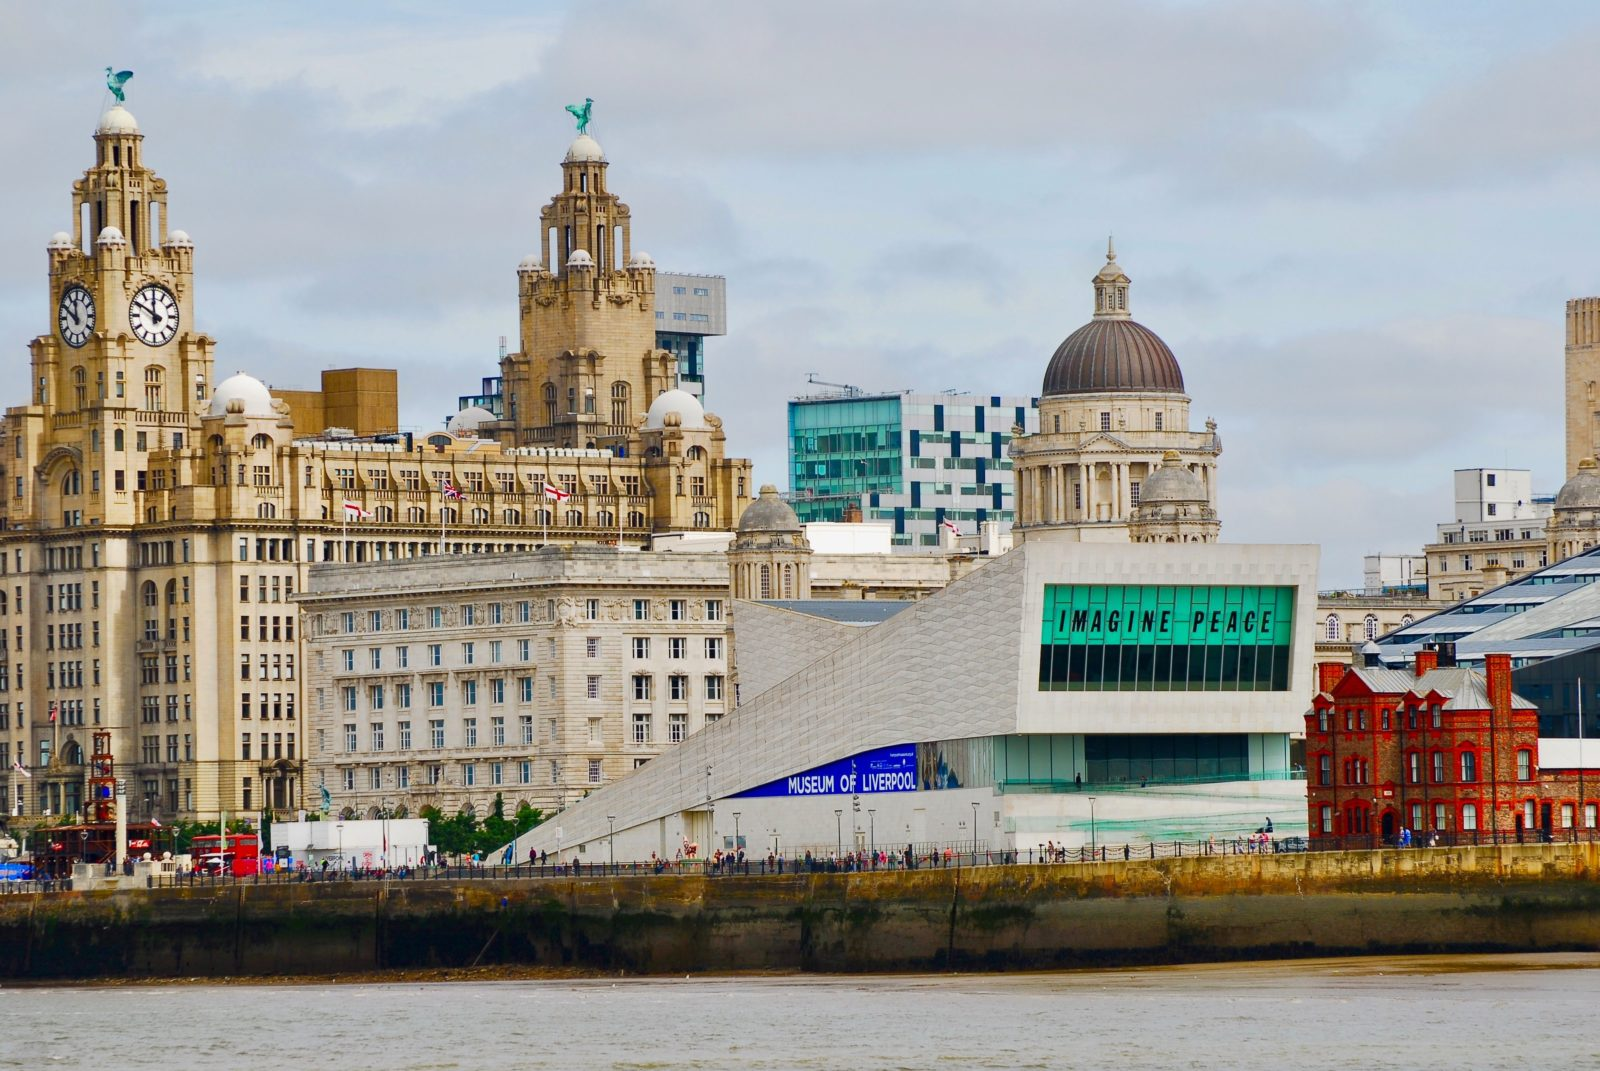 Planning a day out in Liverpool